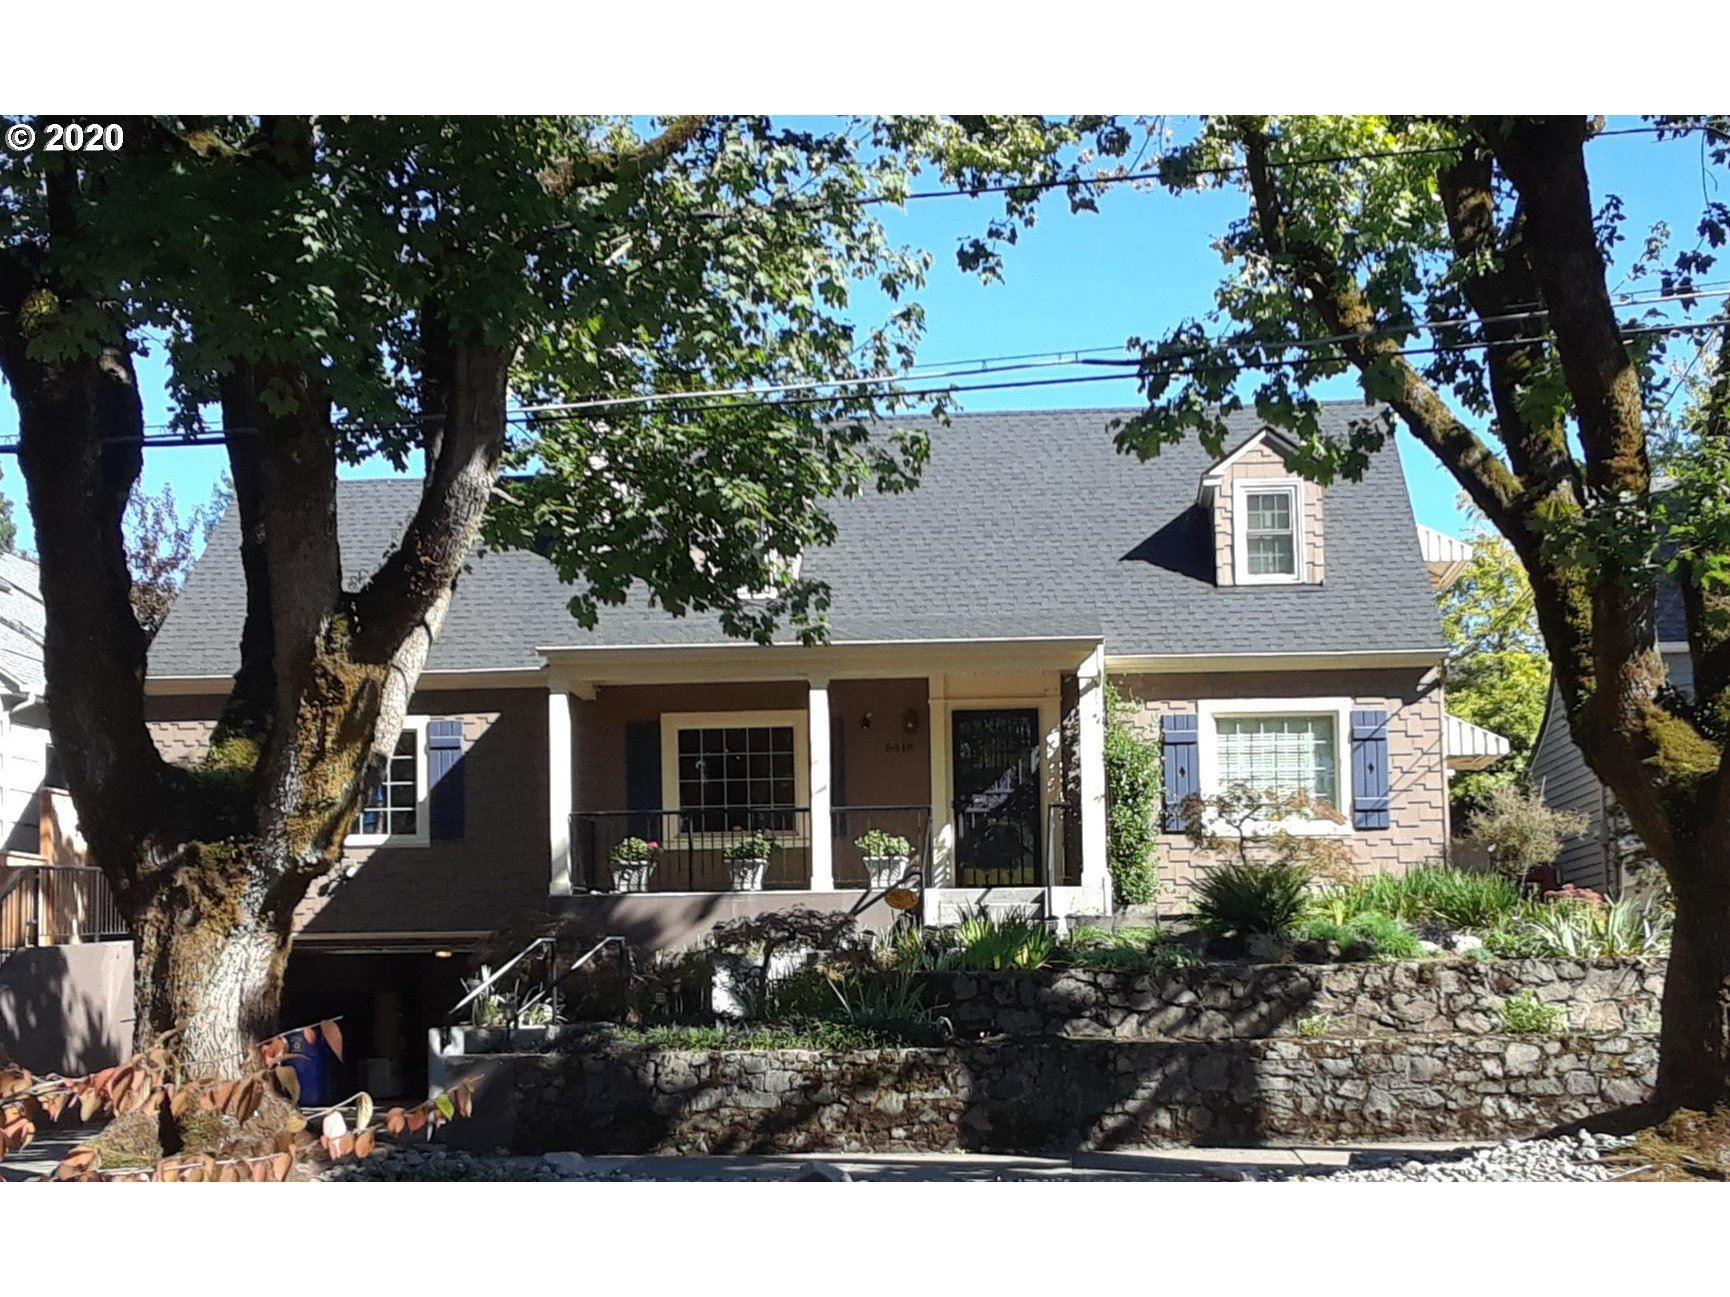 6418 SE 36TH AVE, Portland, OR 97202 - MLS#: 20547785